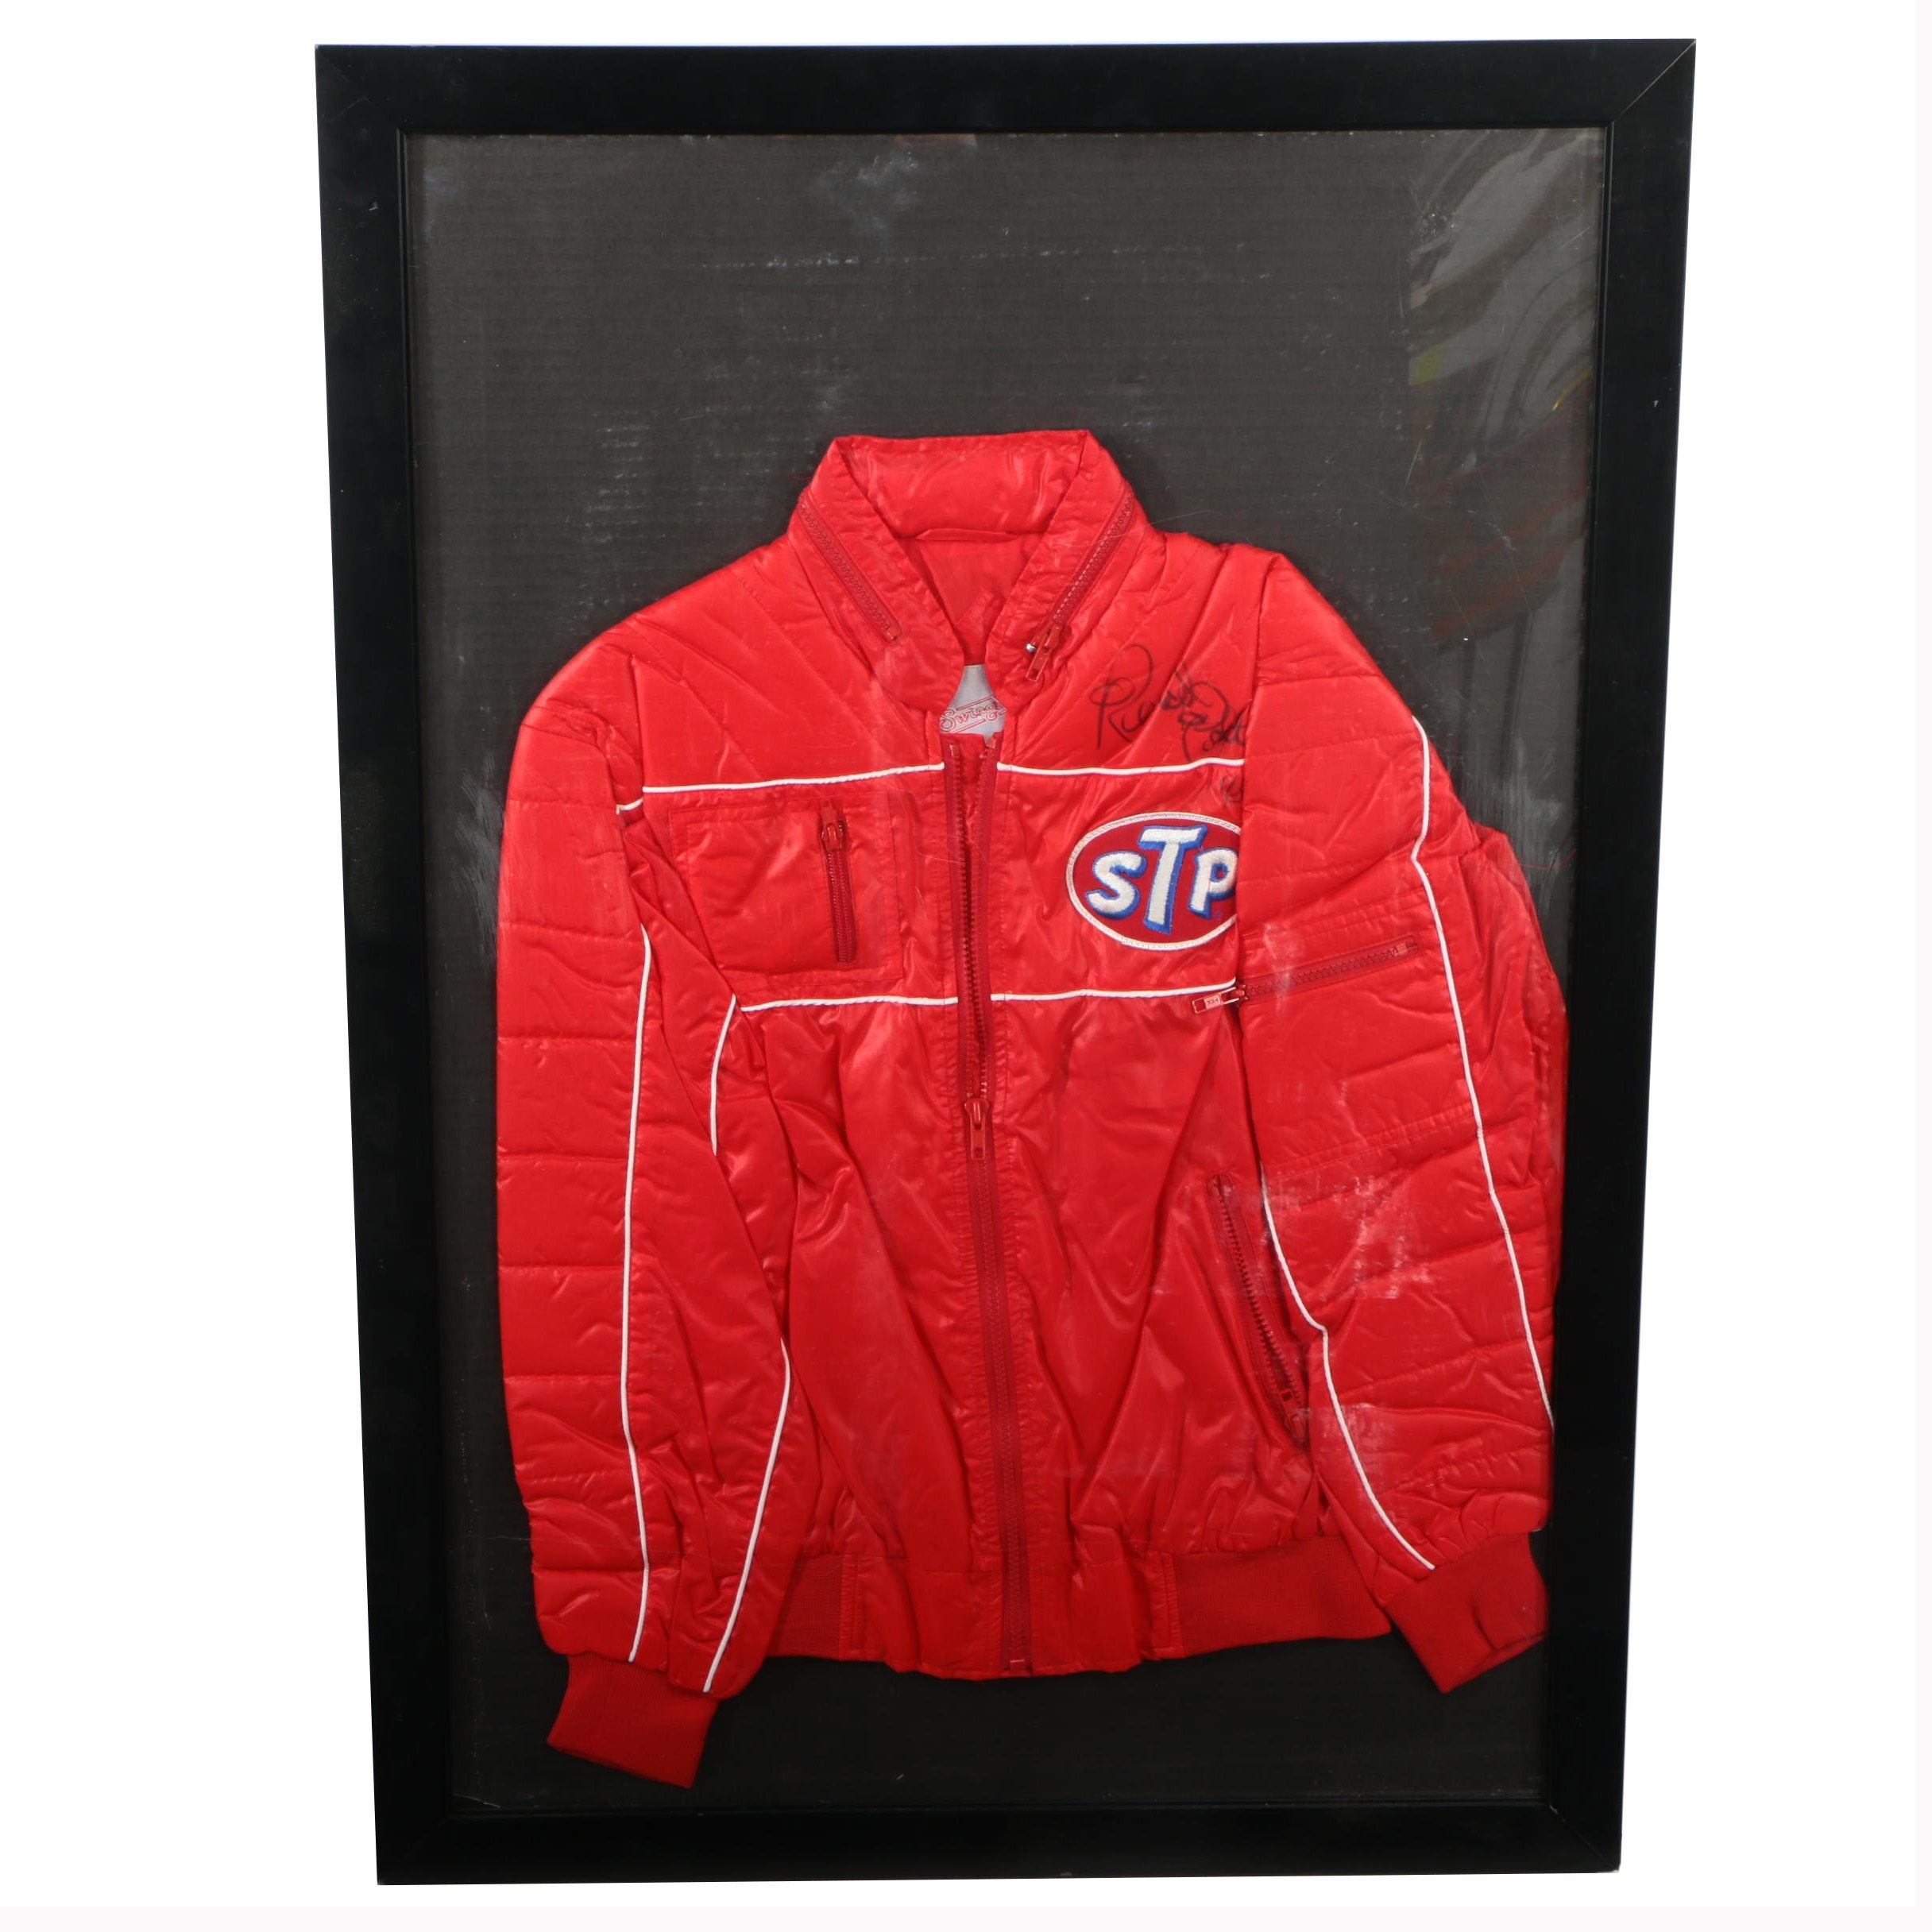 Framed Richard Petty Autographed STP Racing Jacket